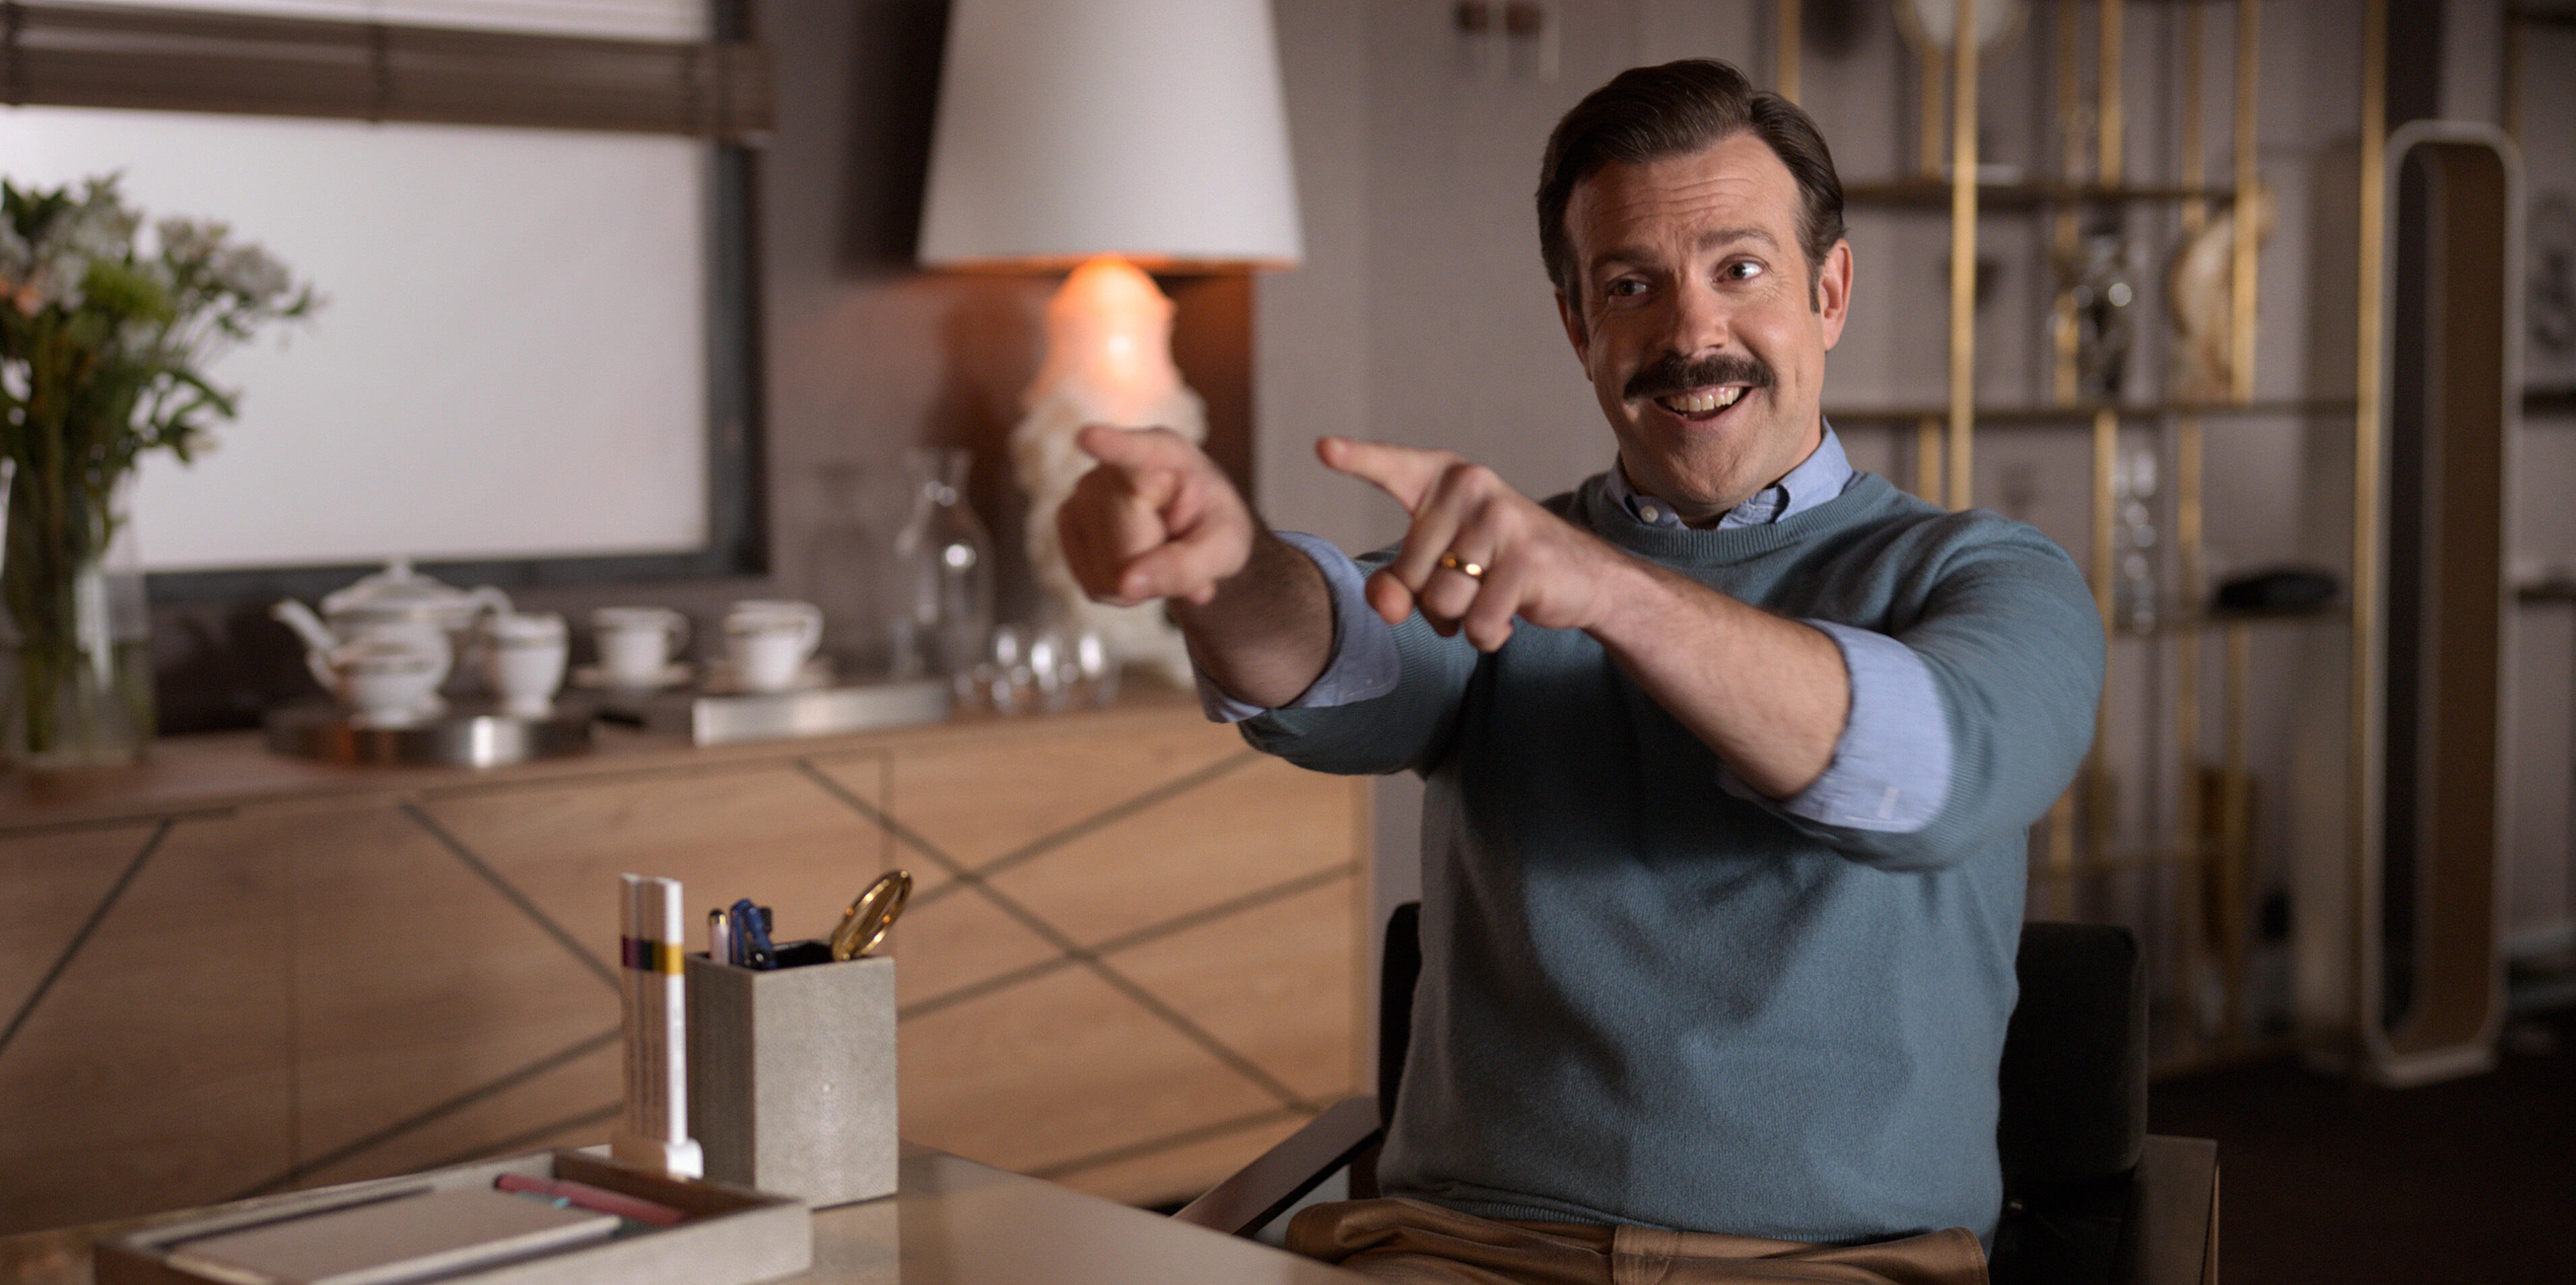 Ted Lasso season 2 kicks off Friday. Here's how to watch it and the rest of Apple TV Plus - CNET